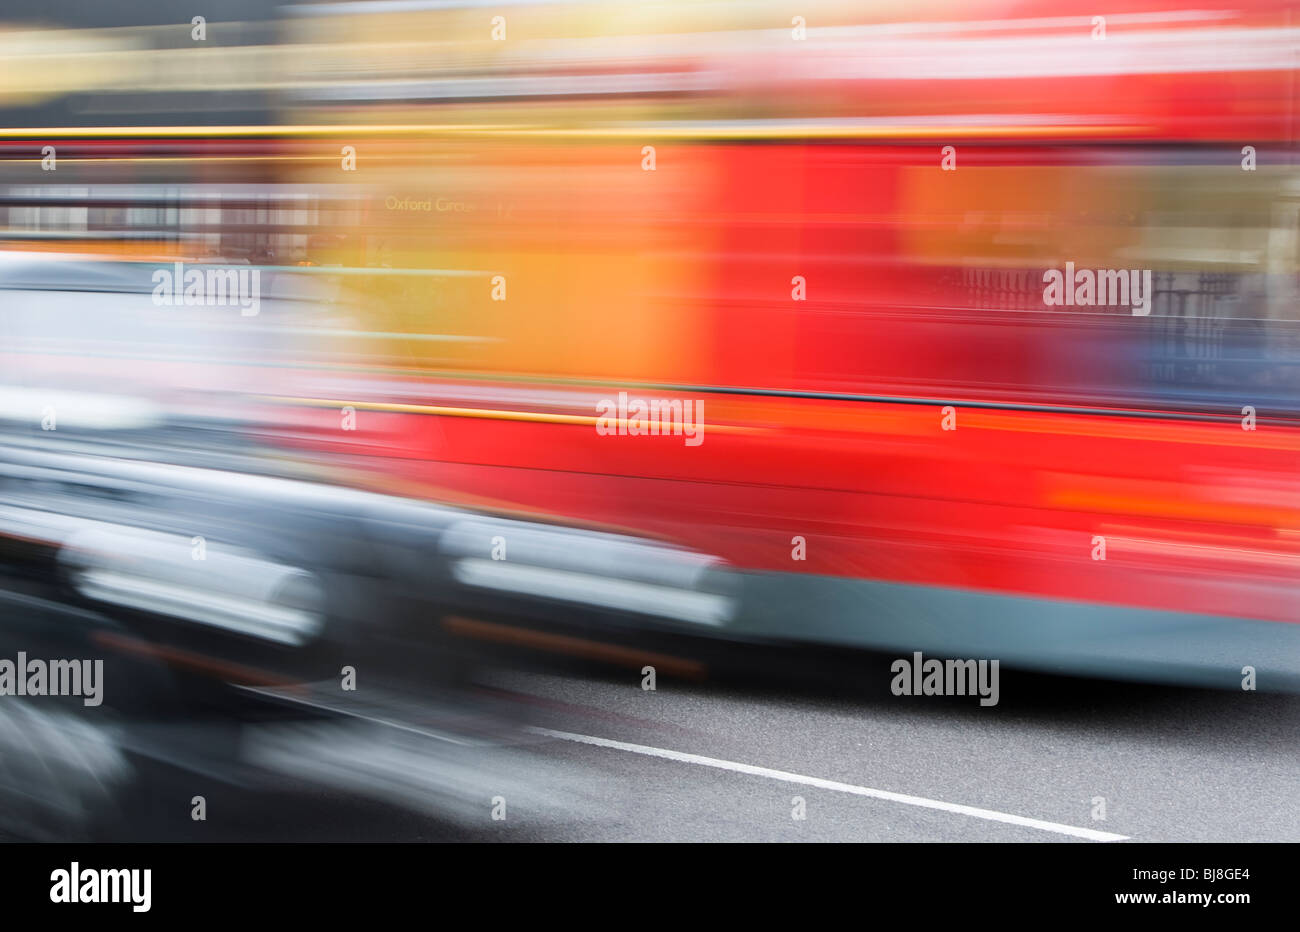 Taxi and Red Double Decker Bus Driving Down Street in London, Blurred Motion, transportation transport black red - Stock Image